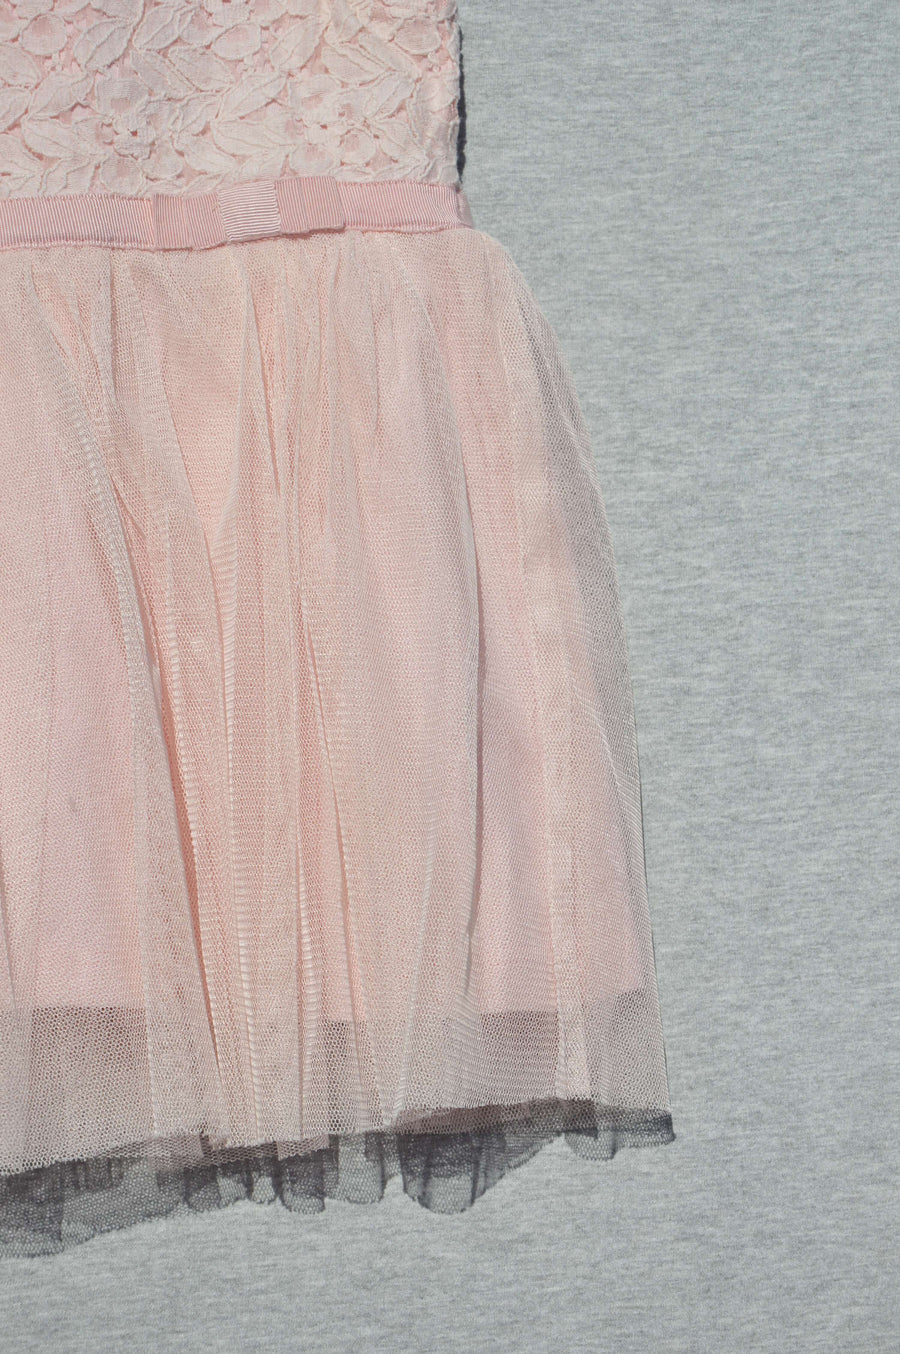 Next - nearly new - peach lace & tulle party dress, size 6-9m